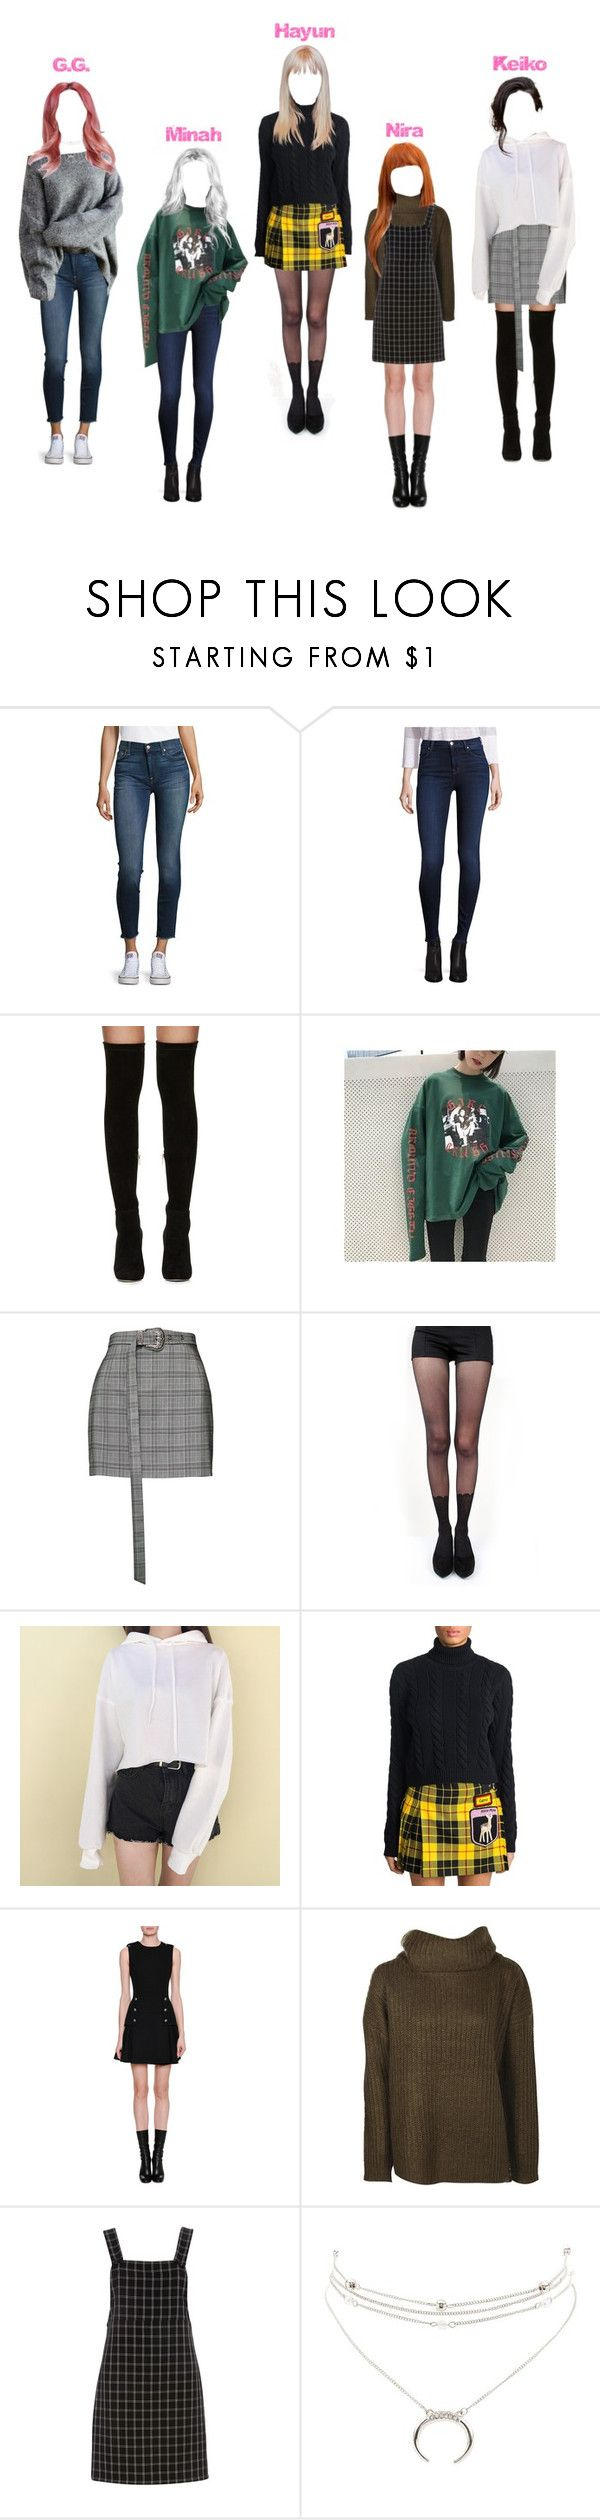 """""""pink suga 22"""" by ohfkthis ❤ liked on Polyvore featuring 7 For All Mankind, J Brand, Jimmy Choo, Magda Butrym, Pretty Polly, Miu Miu, Alexander McQueen, Dorothy Perkins, FARIS and Charlotte Russe"""